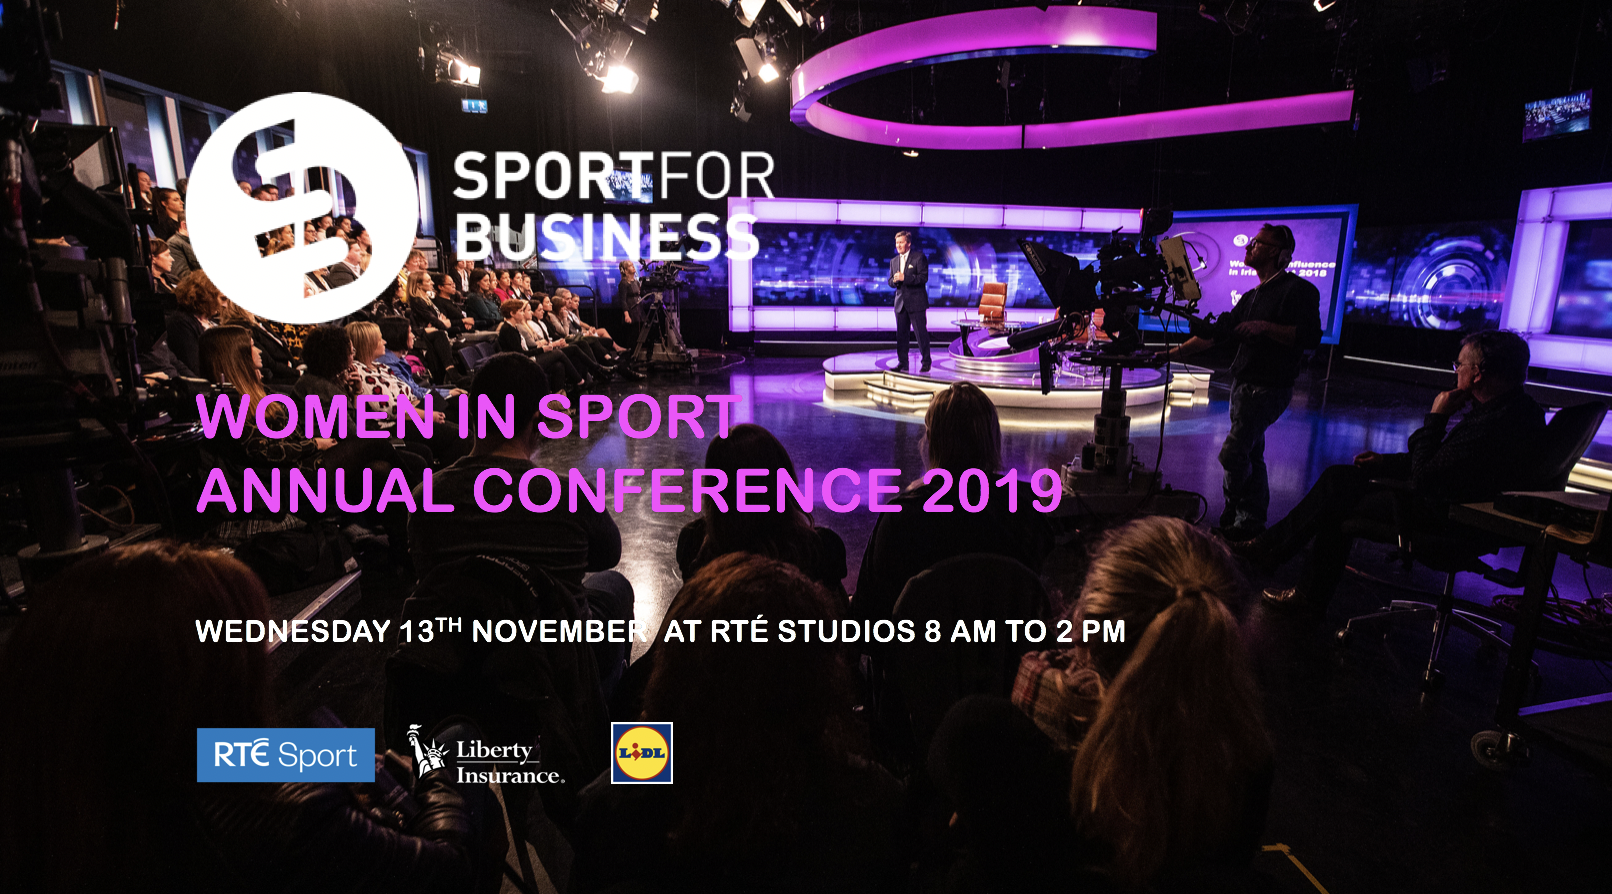 Women in Sport Annual Conference 2019